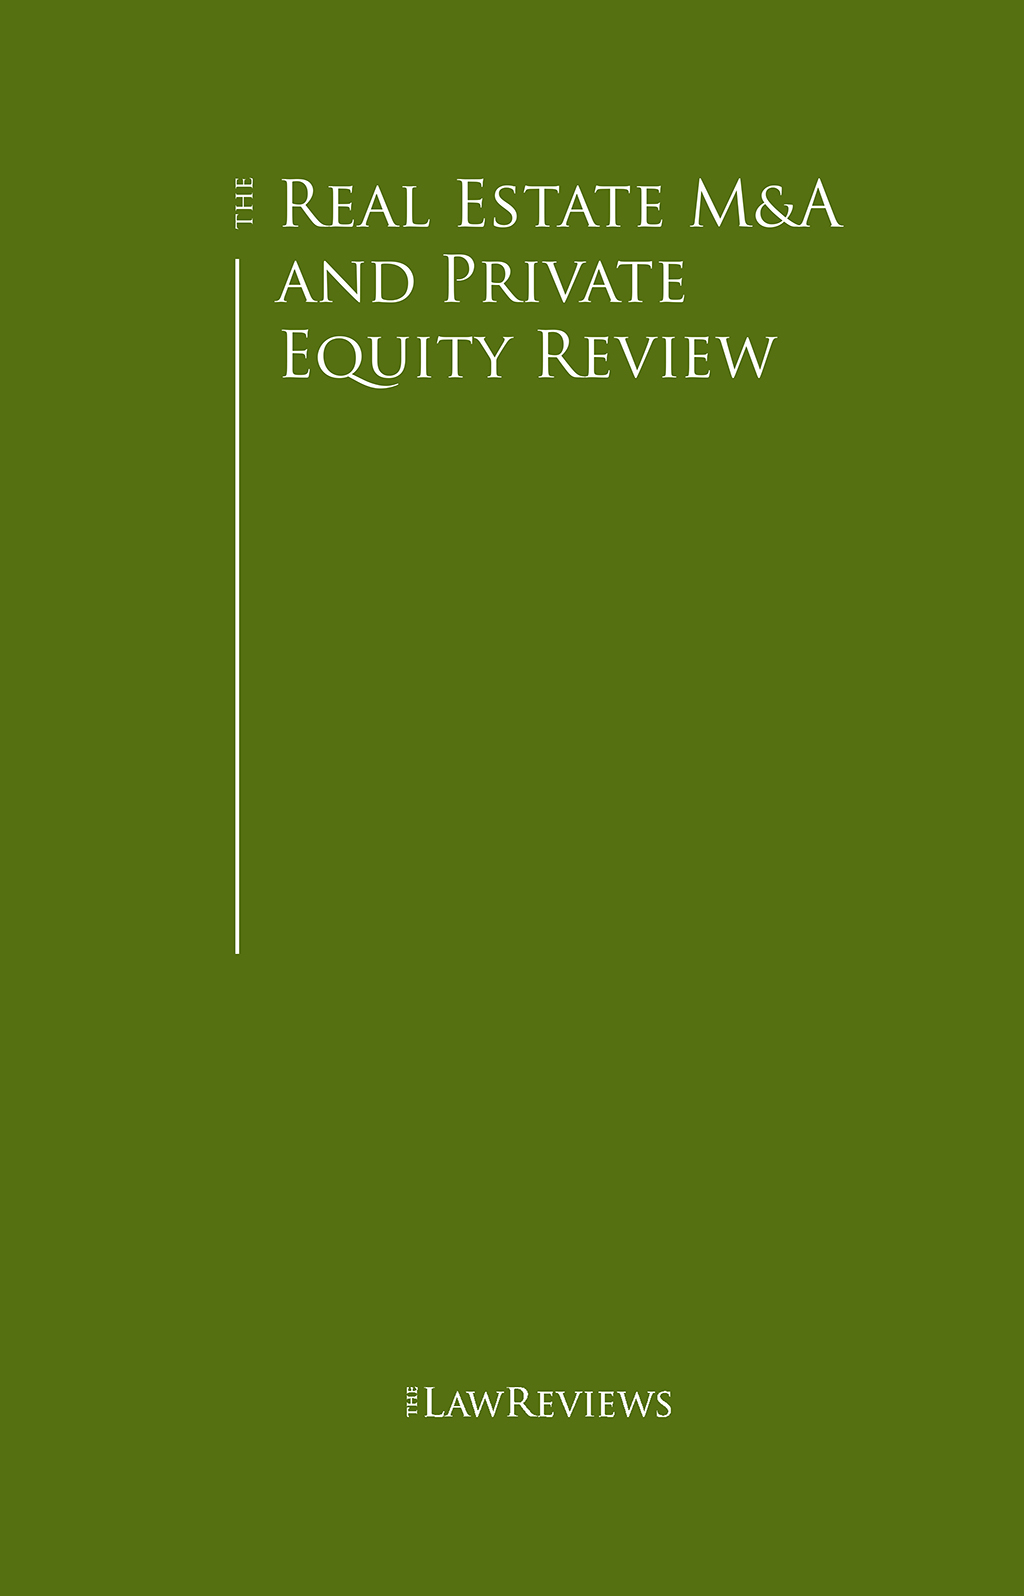 The Real Estate M&A and Private Equity Review